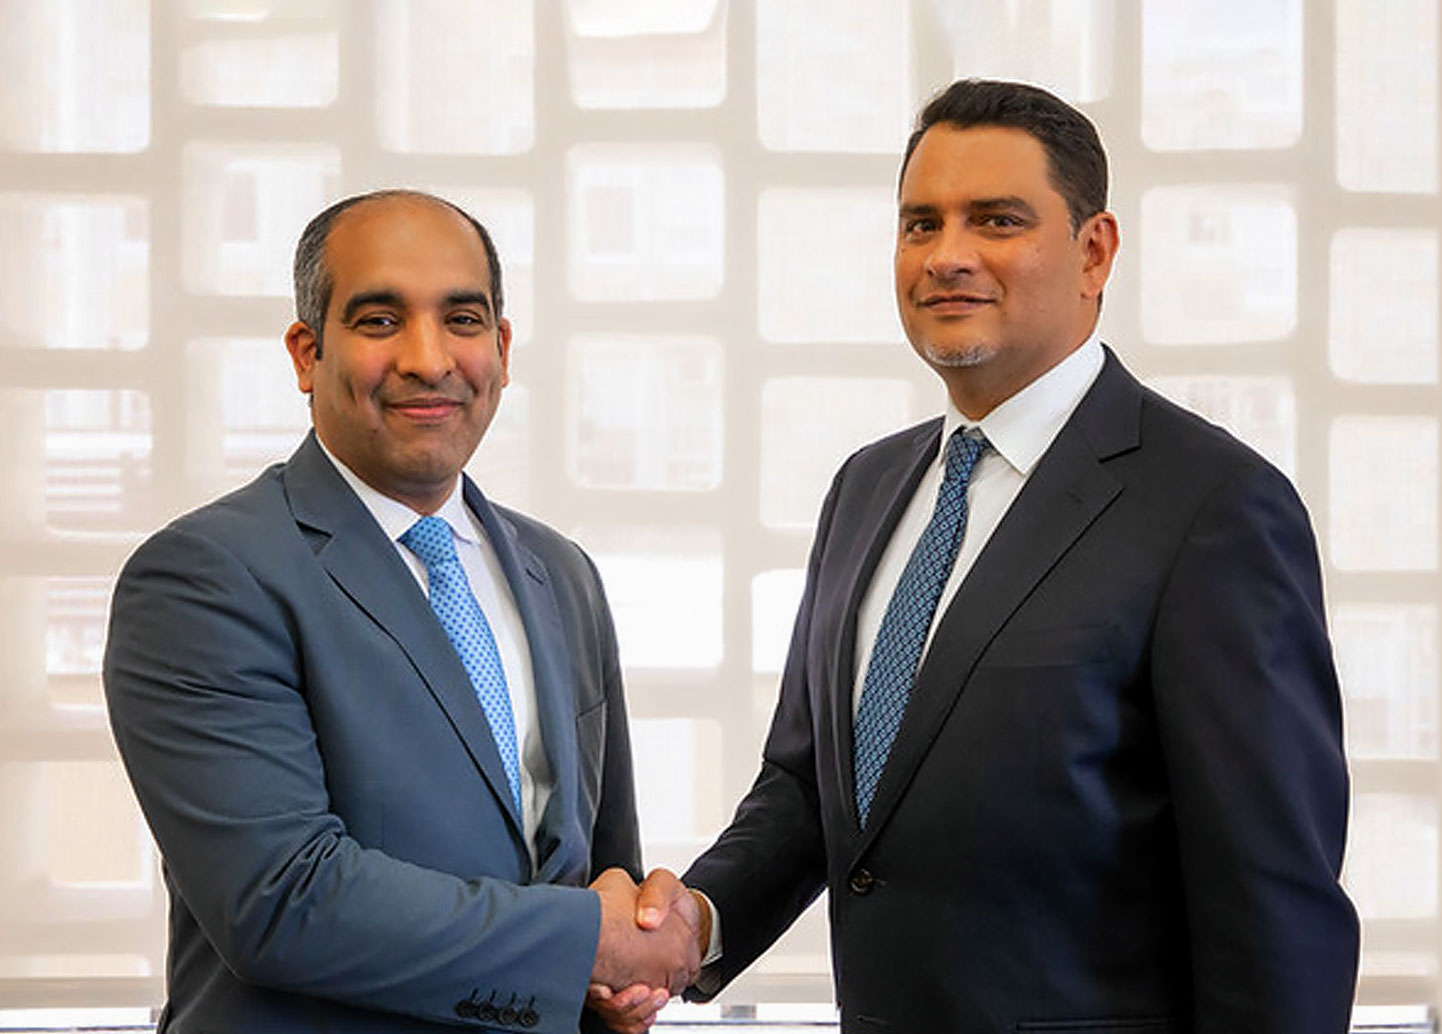 Photo of Lehman College President José Luis Cruz meeting with ITLA President José Armando Tavárez of the Dominican Republic Institute